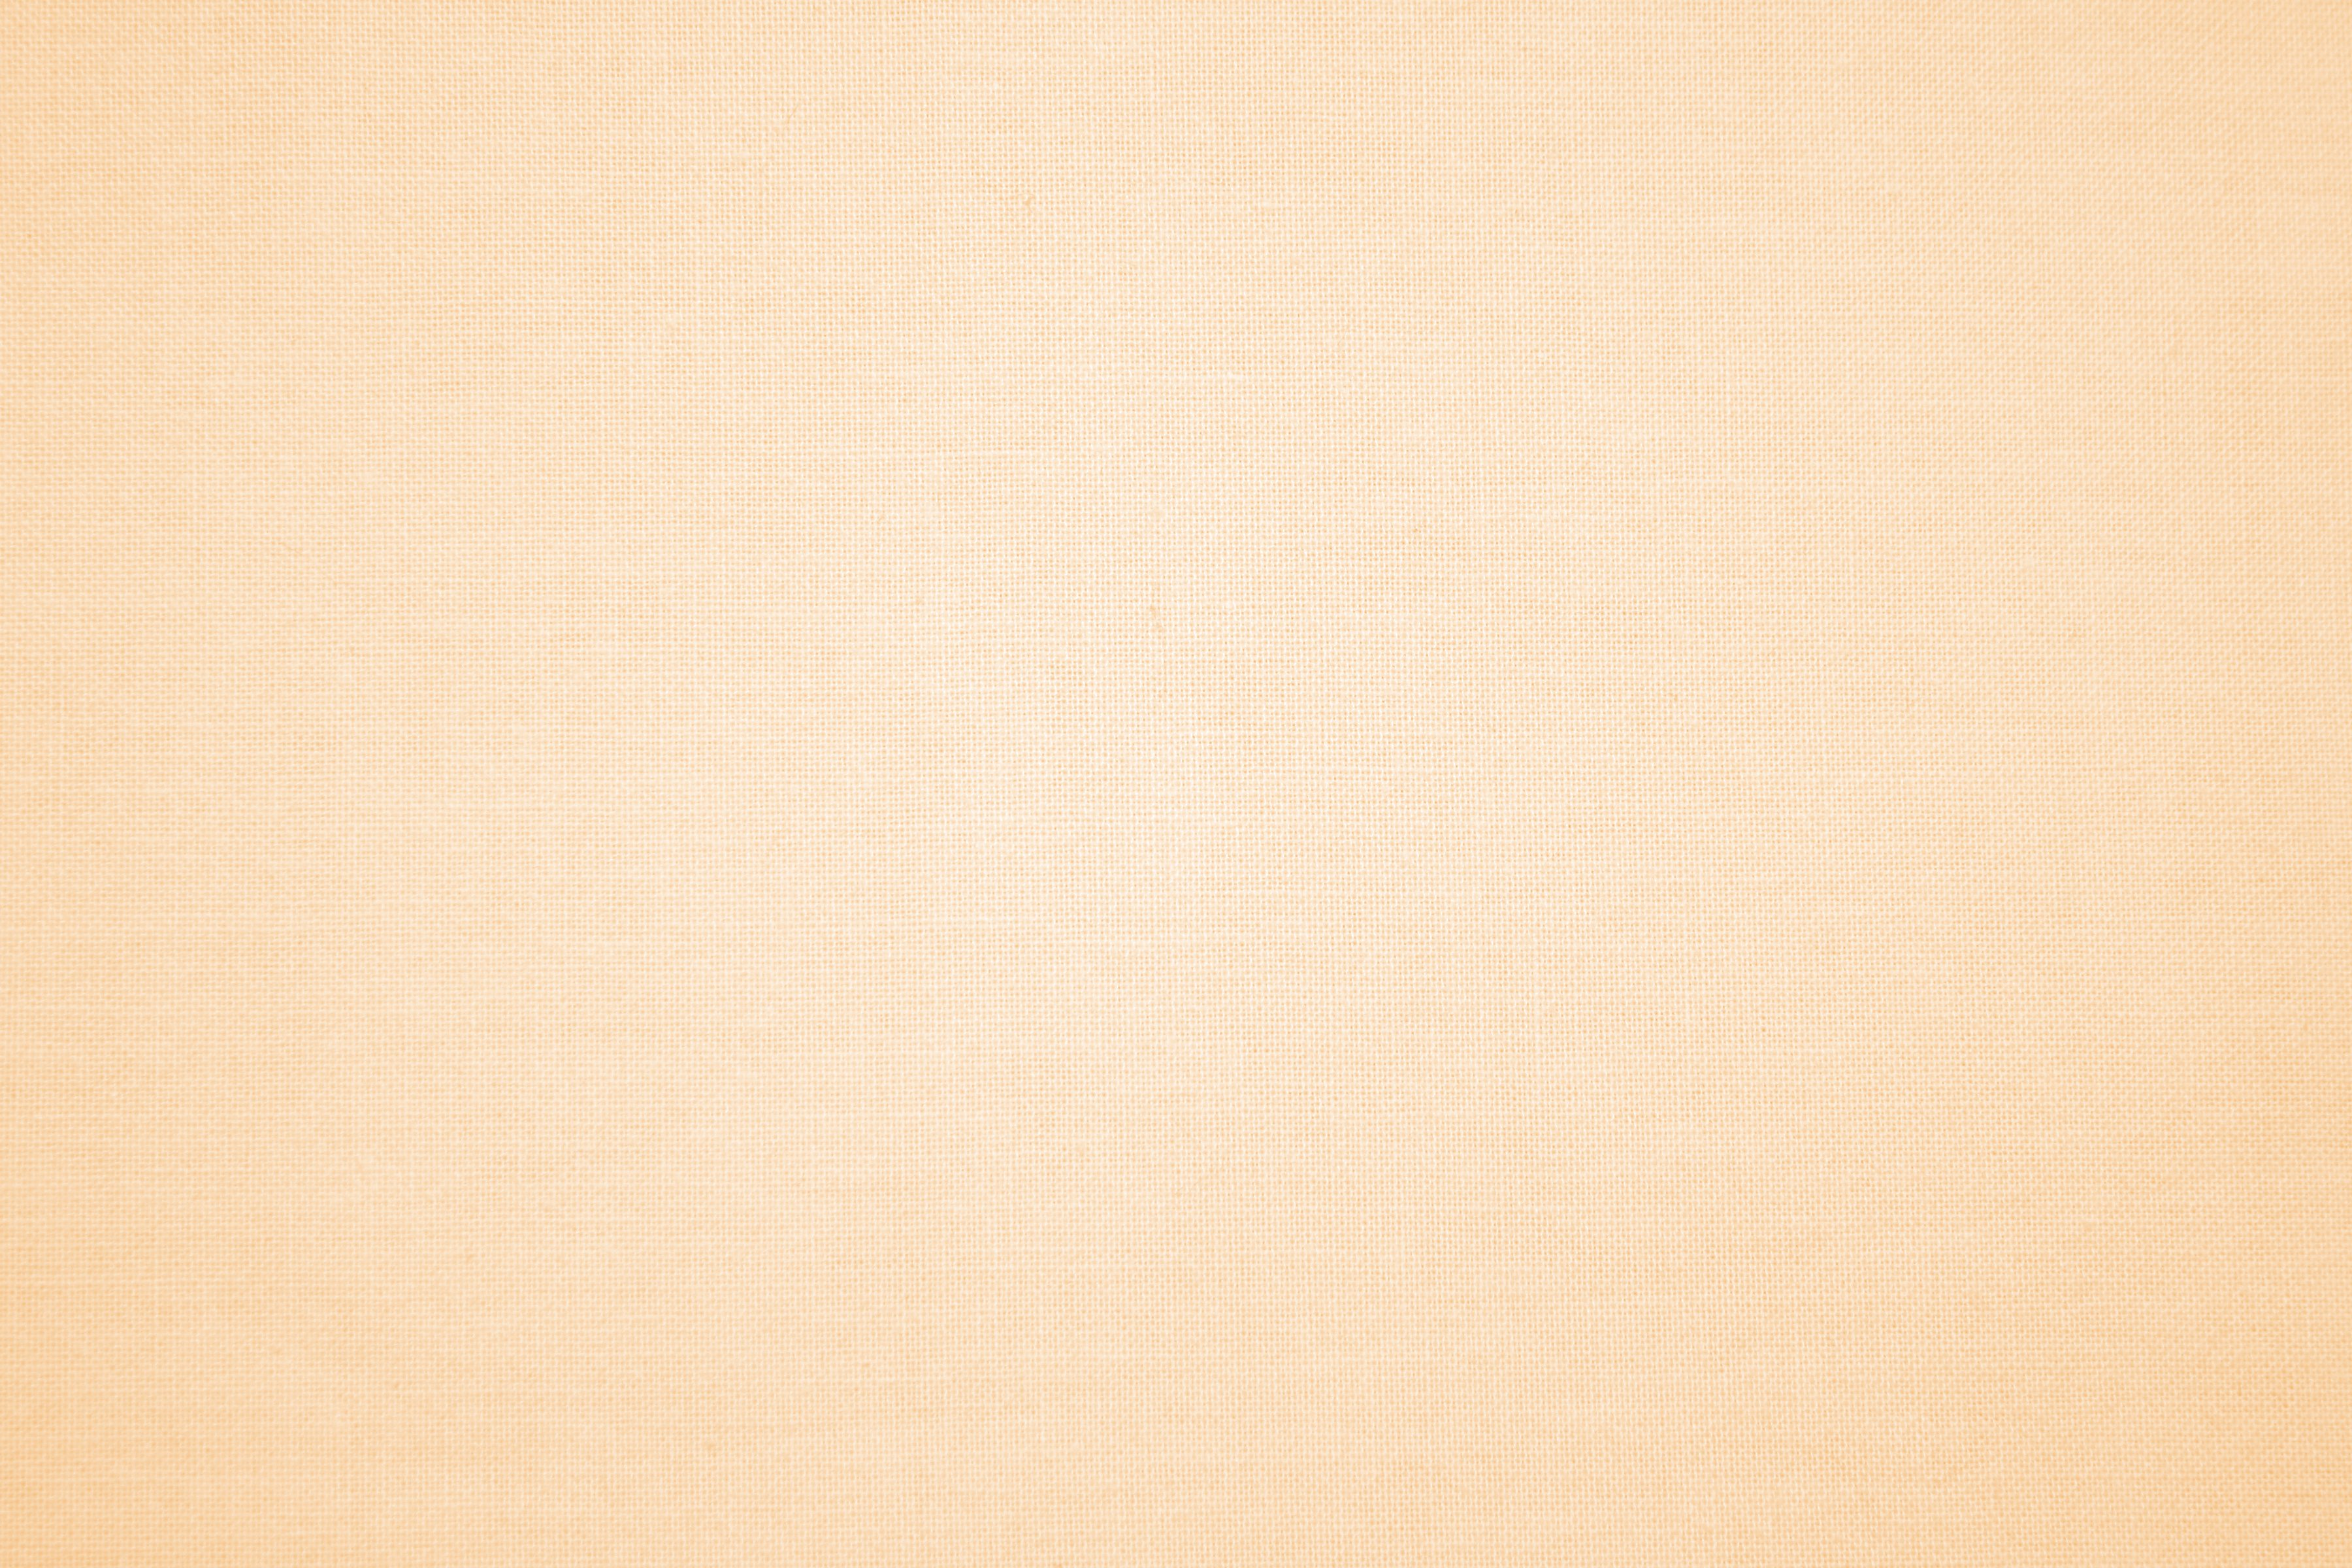 peach colored canvas fabric texture picture free